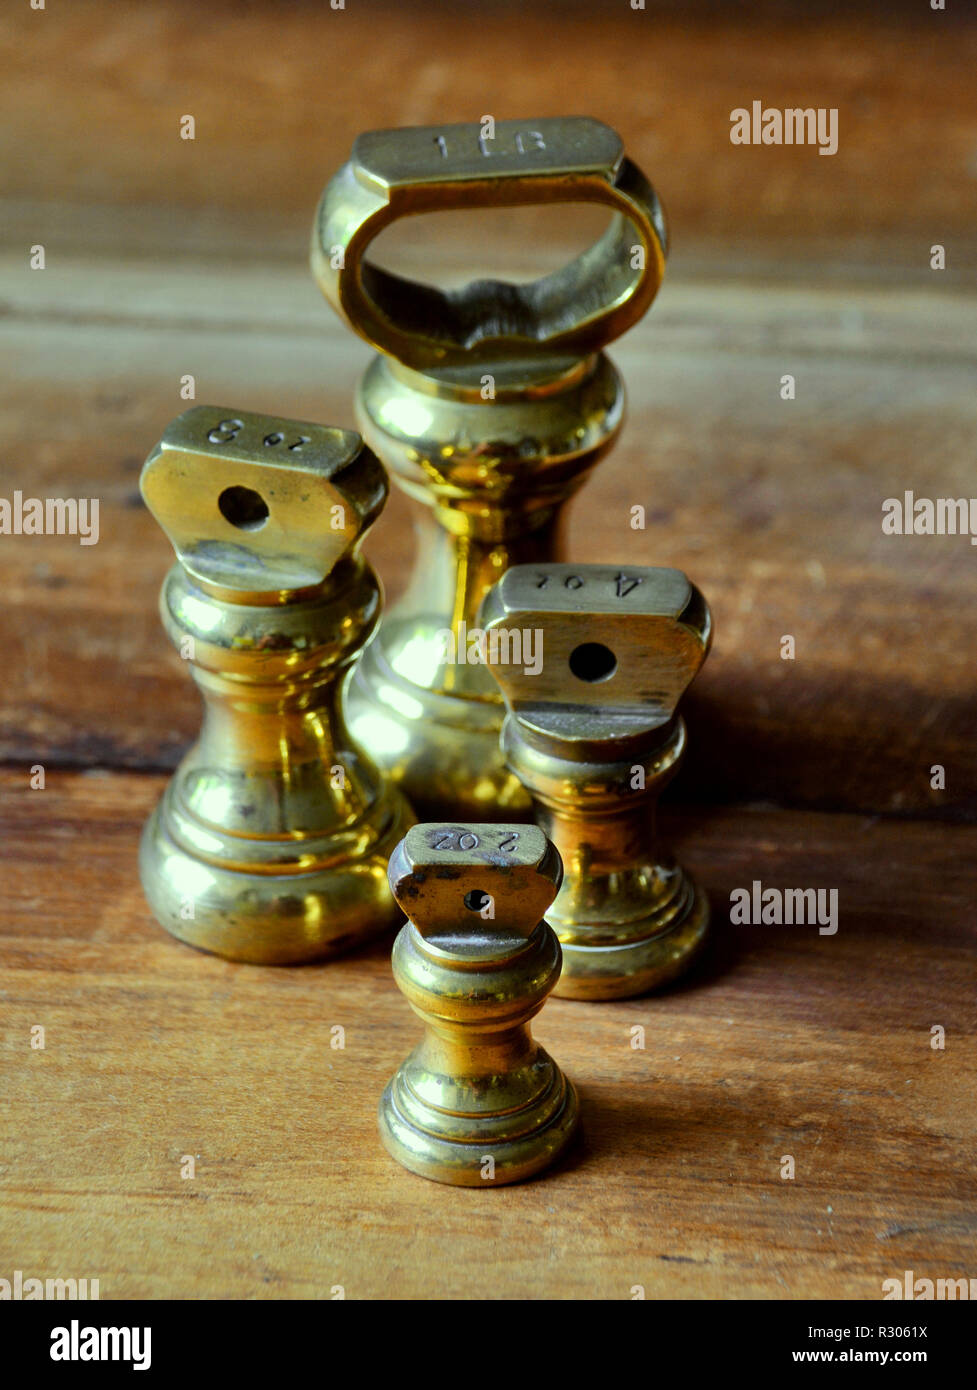 selection of imperial brass measuring weights - Stock Image